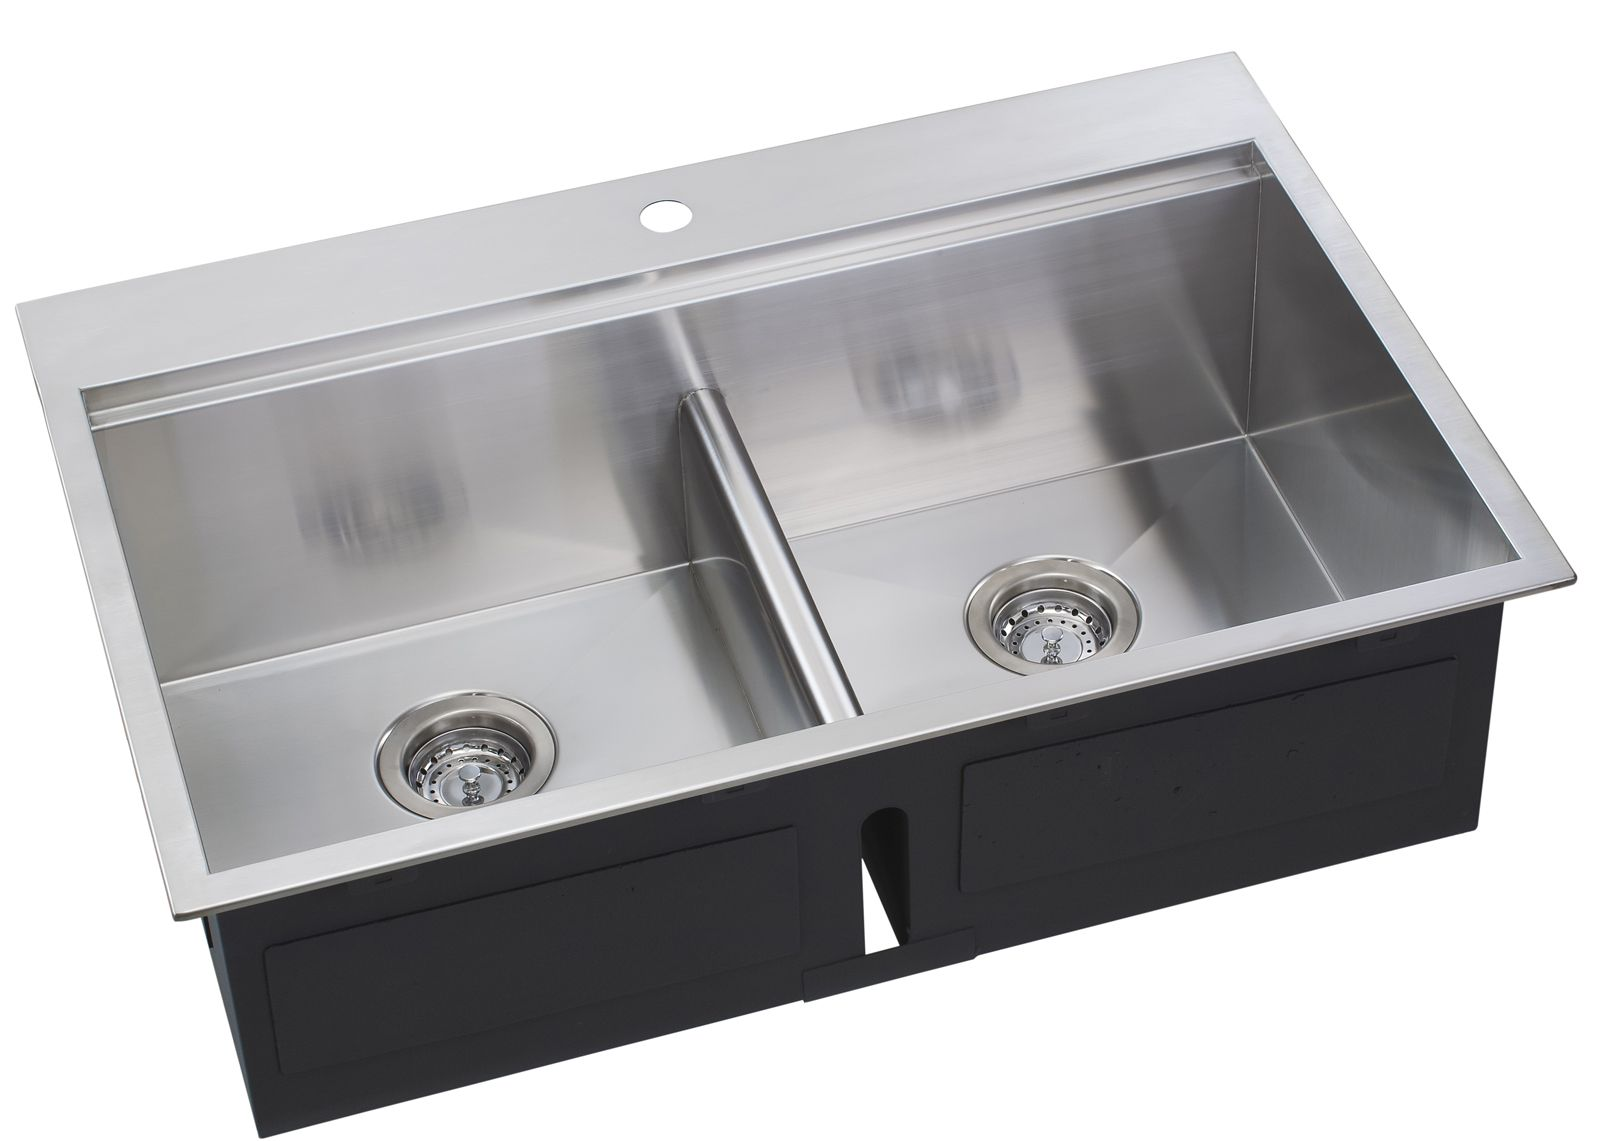 Low Divider Double Bowl Ledge Sink Ledge Sink Sink Stainless